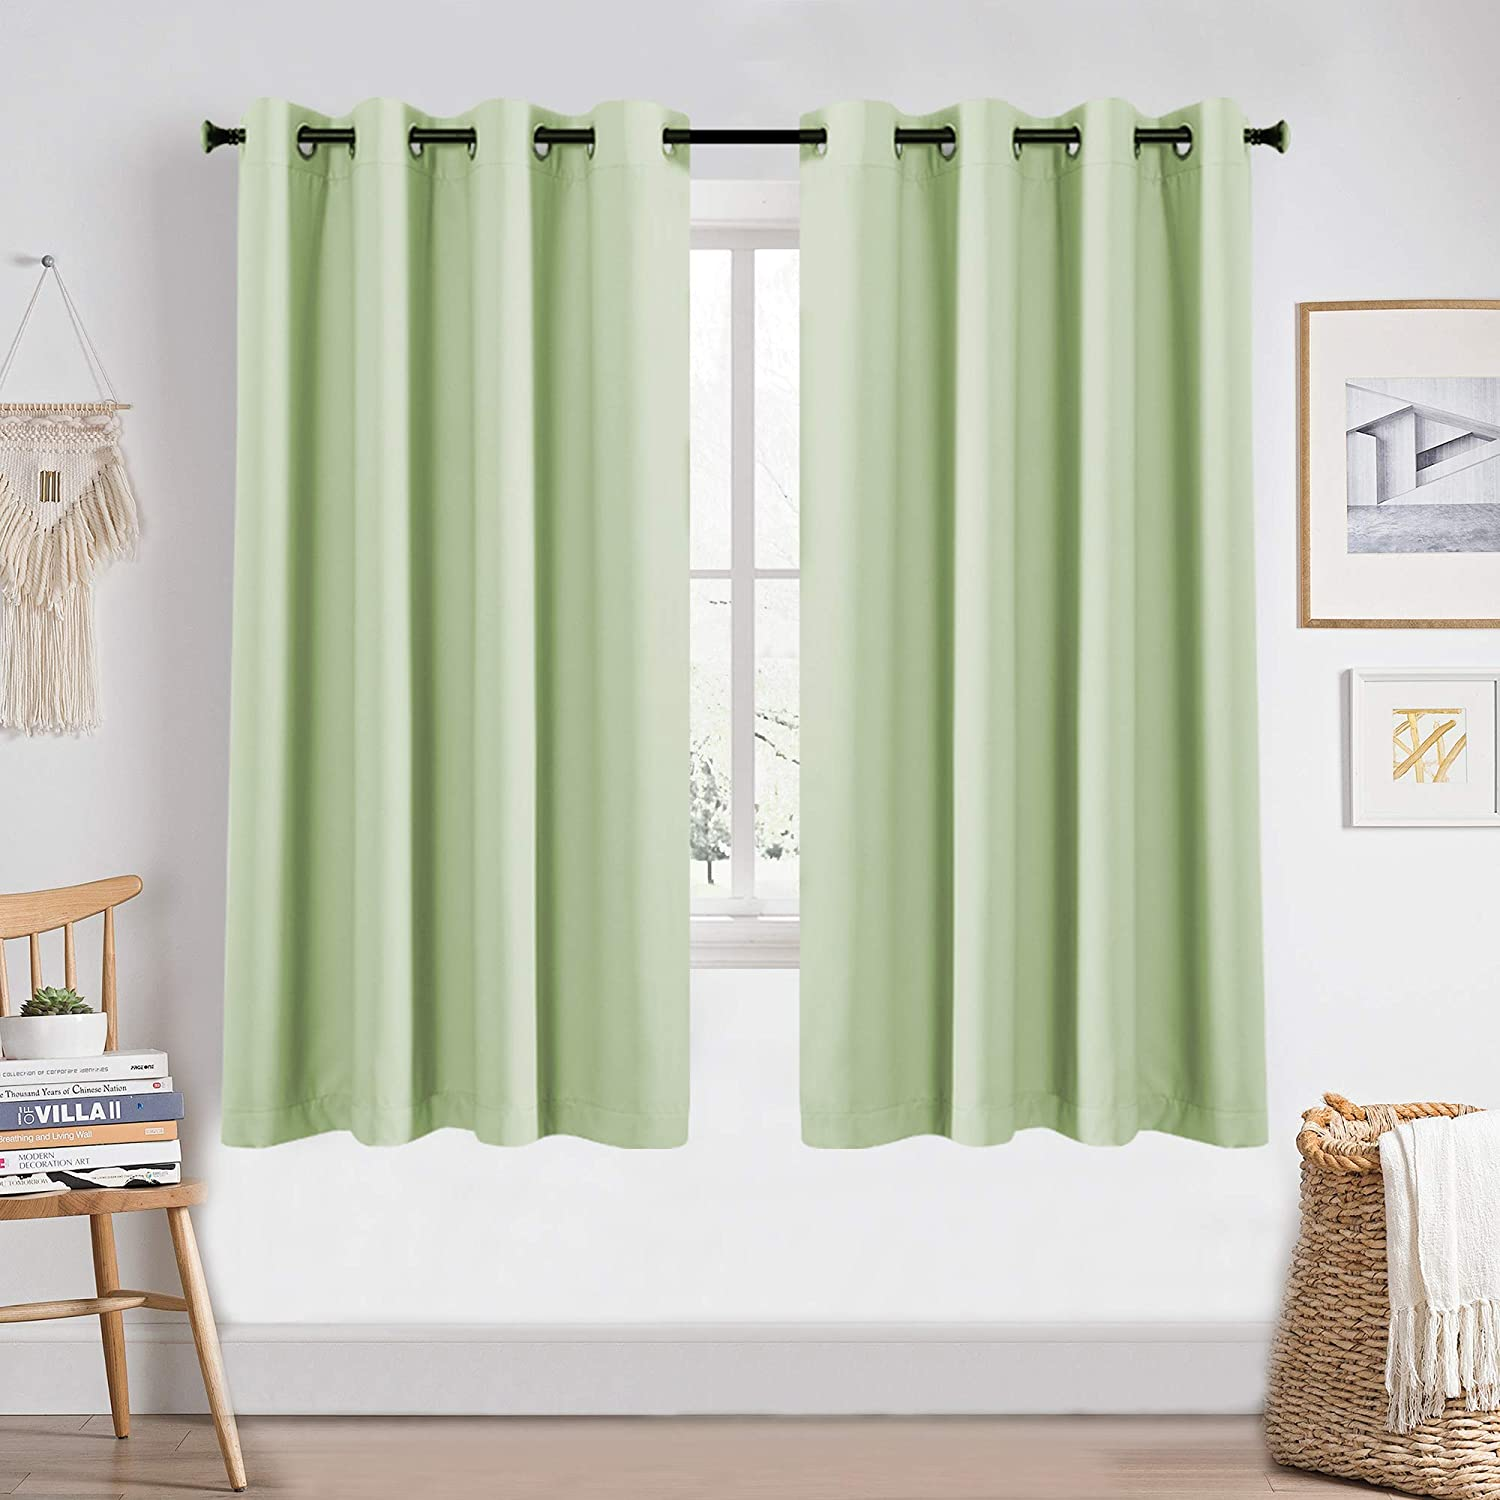 KEQIAOSUOCAI 2 Pcs Mint Green 72 Inch Blackout Curtains for Girls Room Home Decor Thermal Insulated Window Treatments Grommet Light Green Curtains Drapes for Nursery Living Room